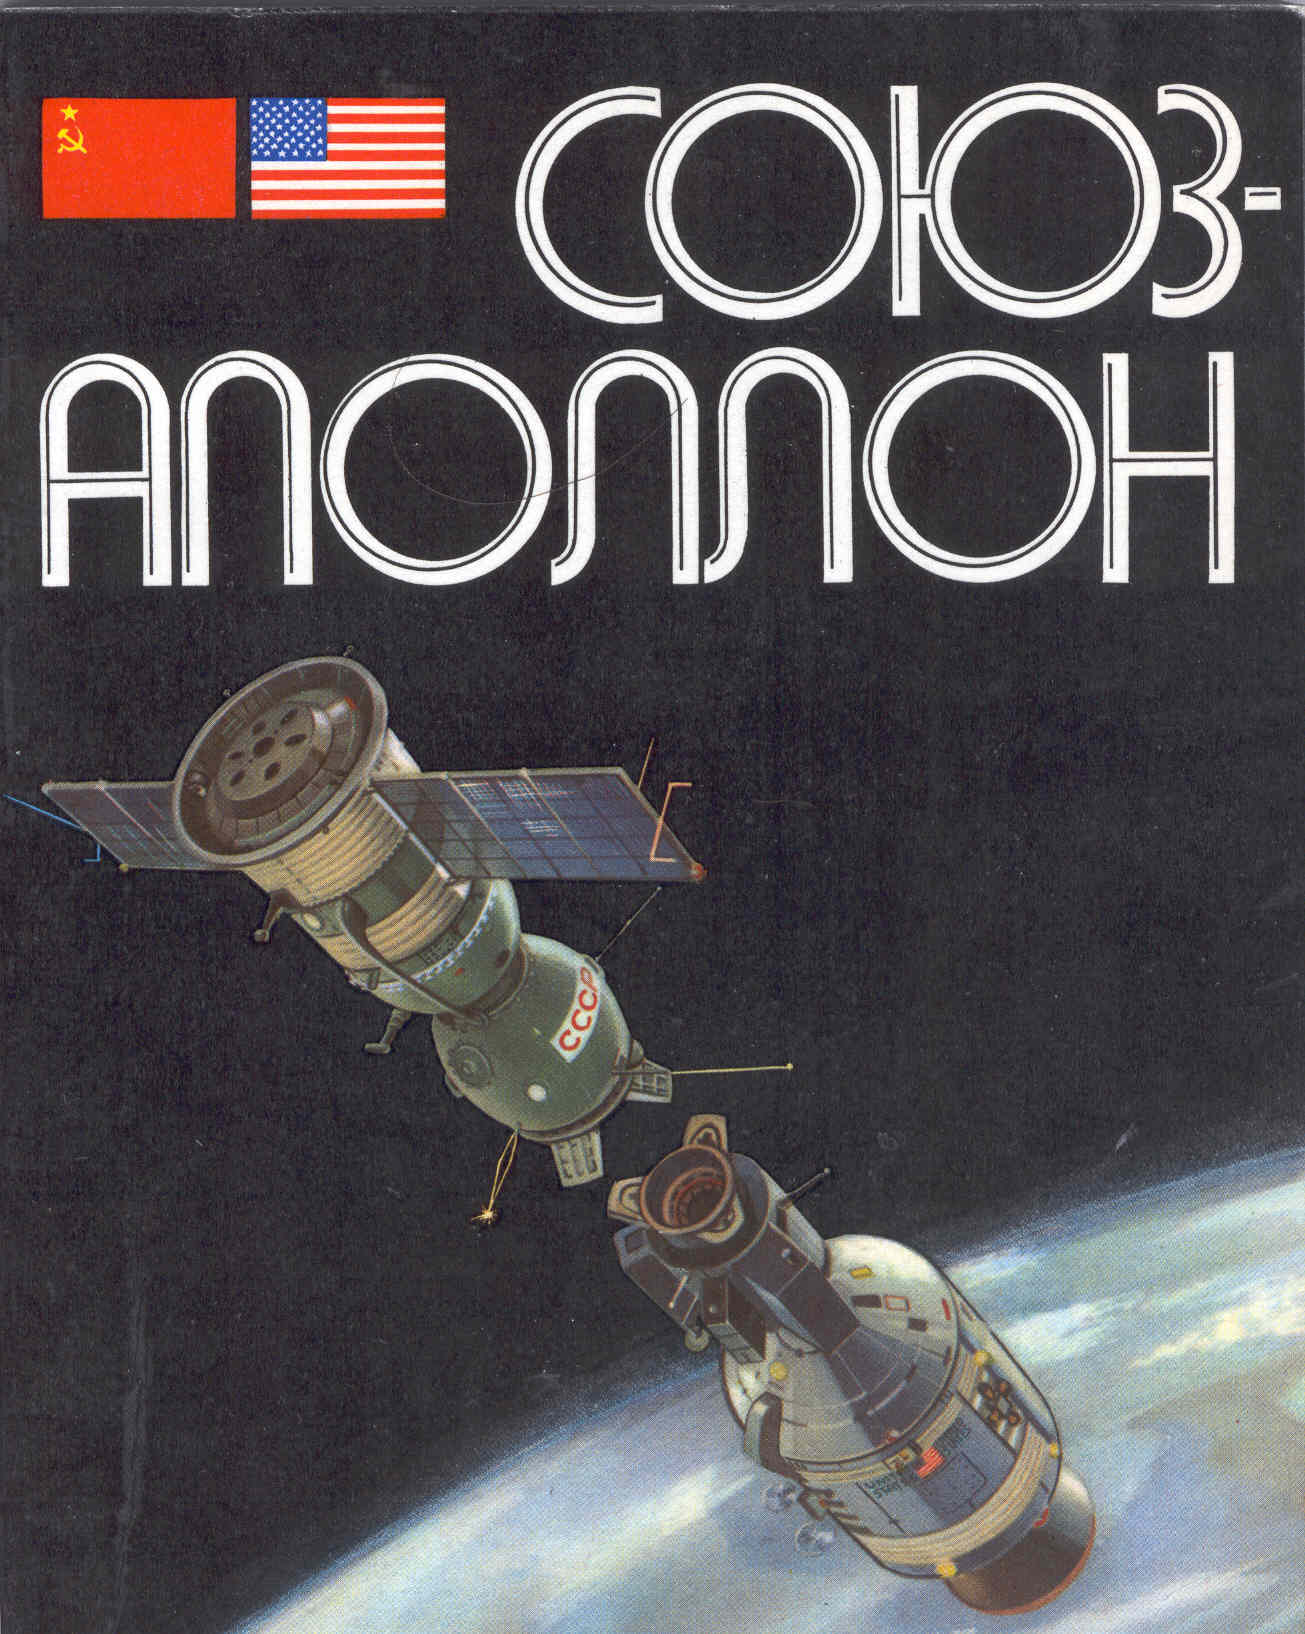 # cb101 Soyuz-Apollo book signed by Alexei Leonov and autor